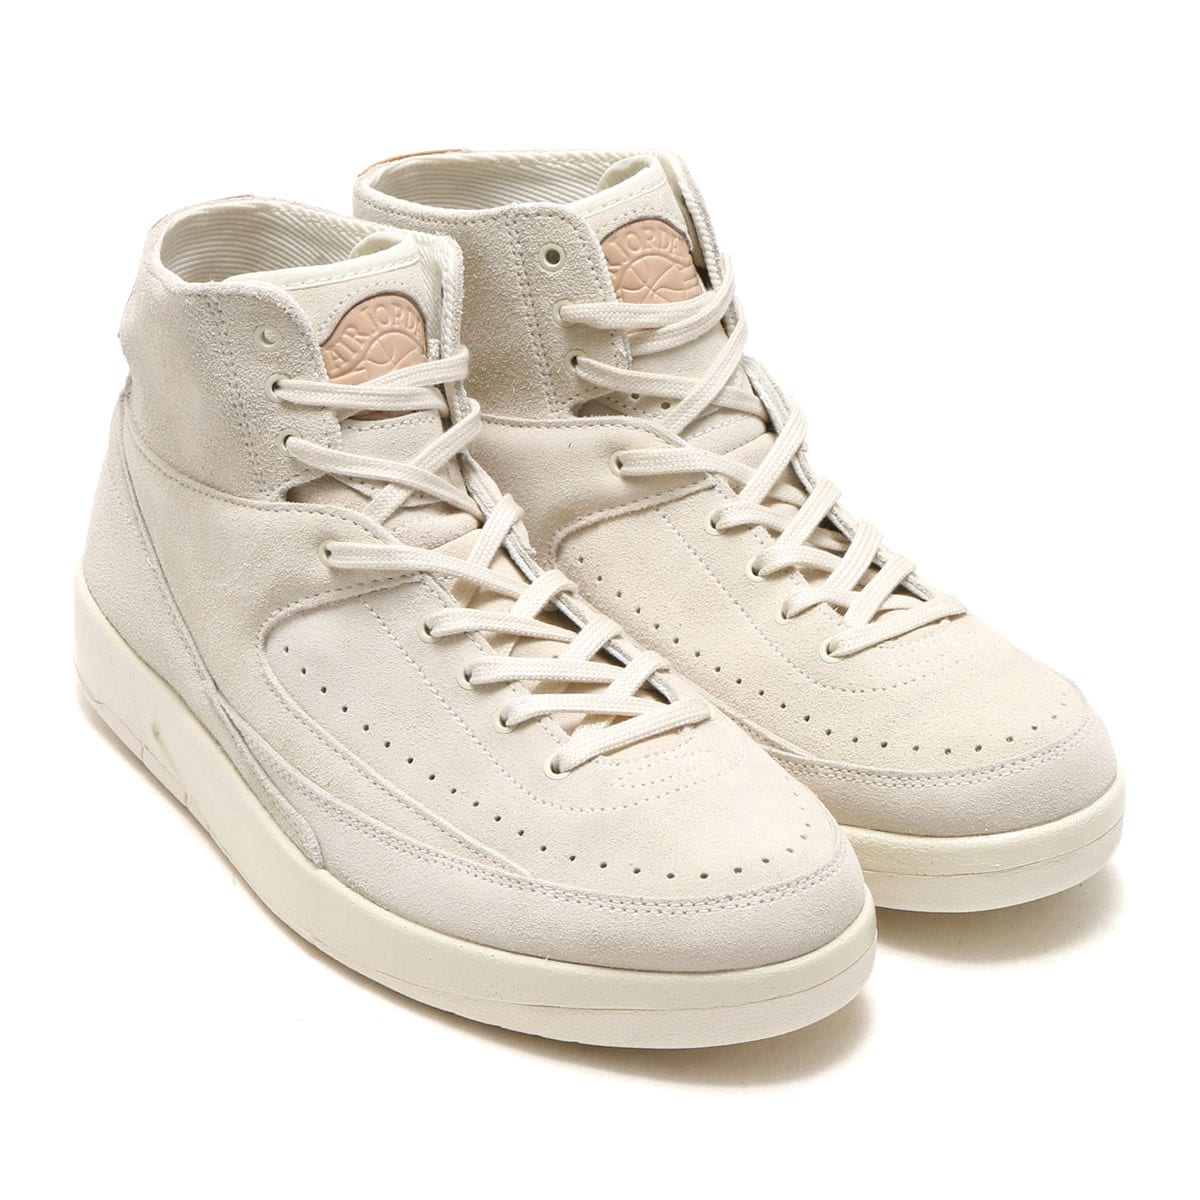 sale retailer 80428 0b86b NIKE AIR JORDAN 2 RETRO DECON SAIL/SAIL-BIO BEIGE